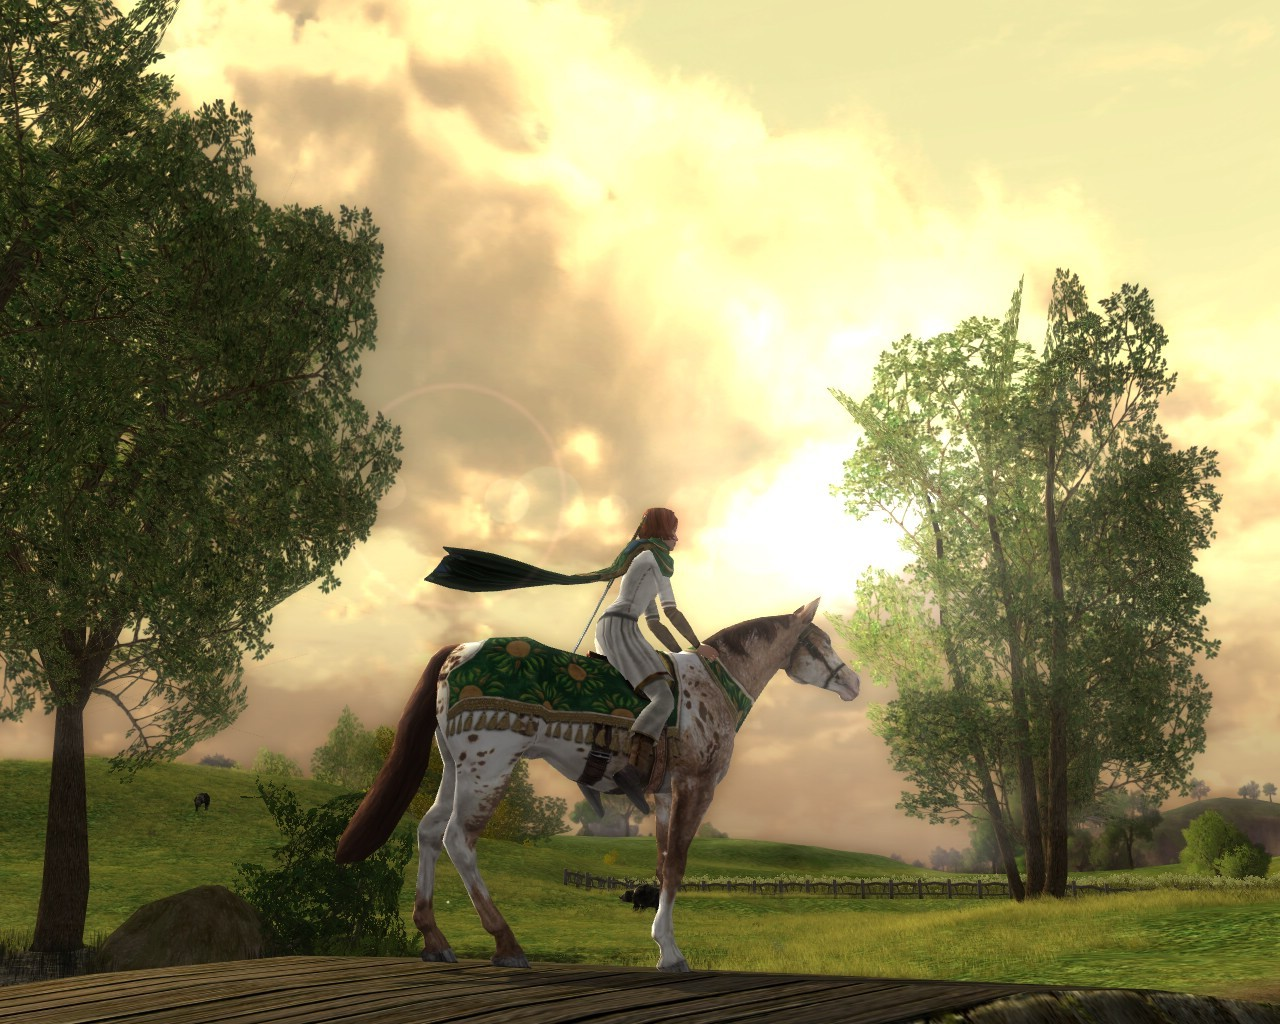 Lord of the Rings Online - Bree-Land at Sunset.